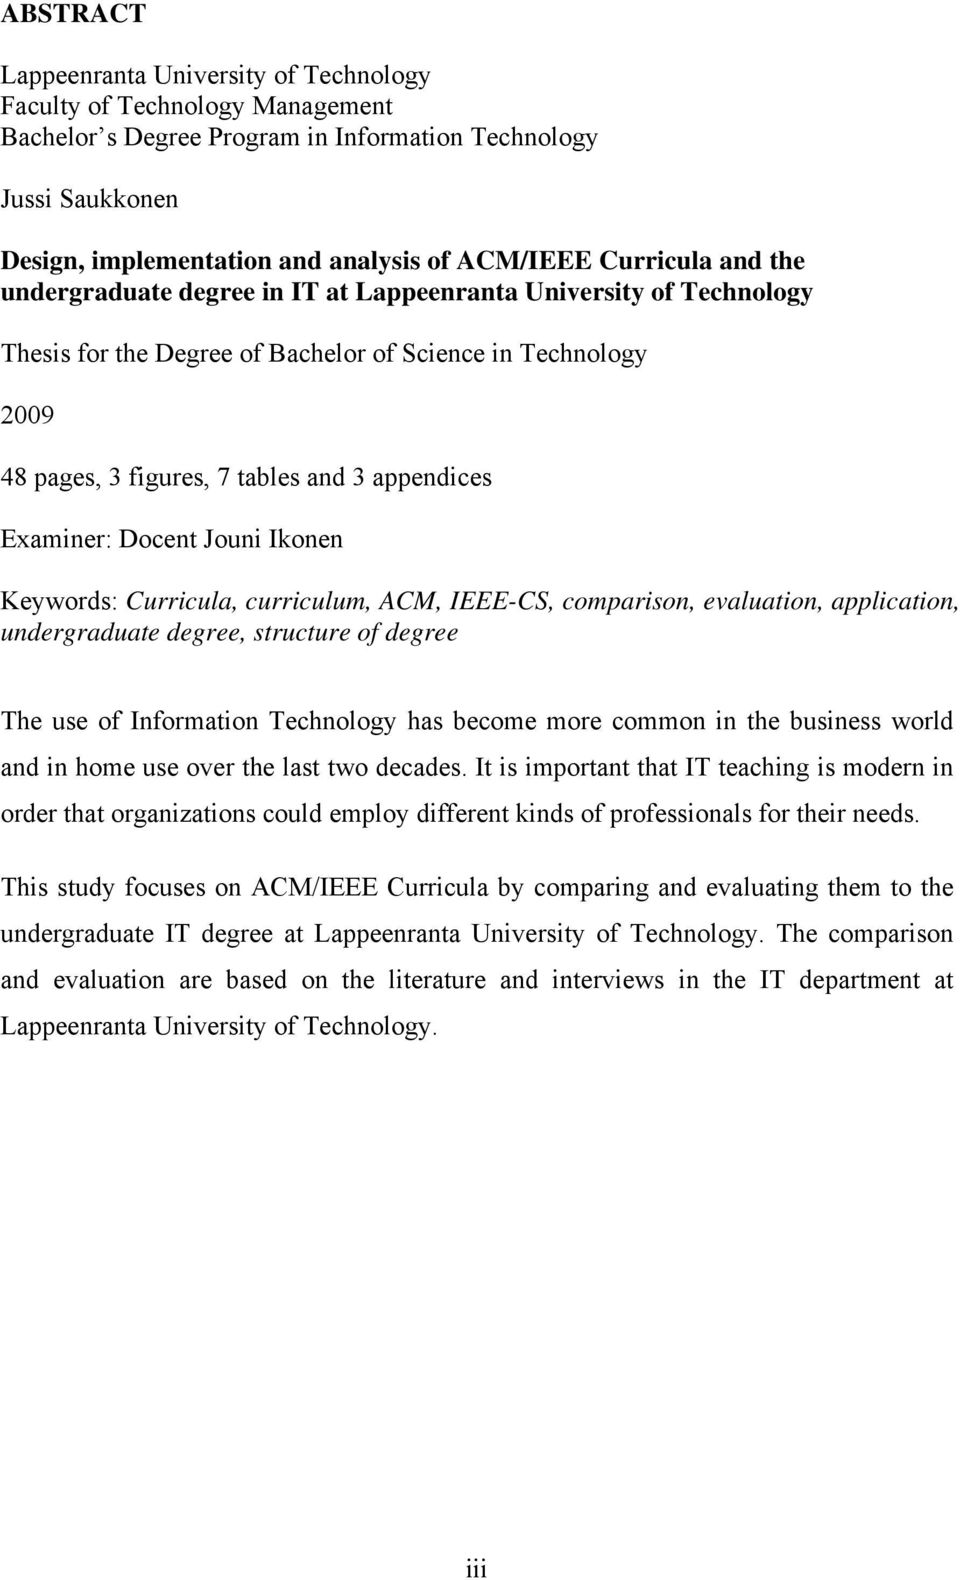 Examiner: Docent Jouni Ikonen Keywords: Curricula, curriculum, ACM, IEEE-CS, comparison, evaluation, application, undergraduate degree, structure of degree The use of Information Technology has